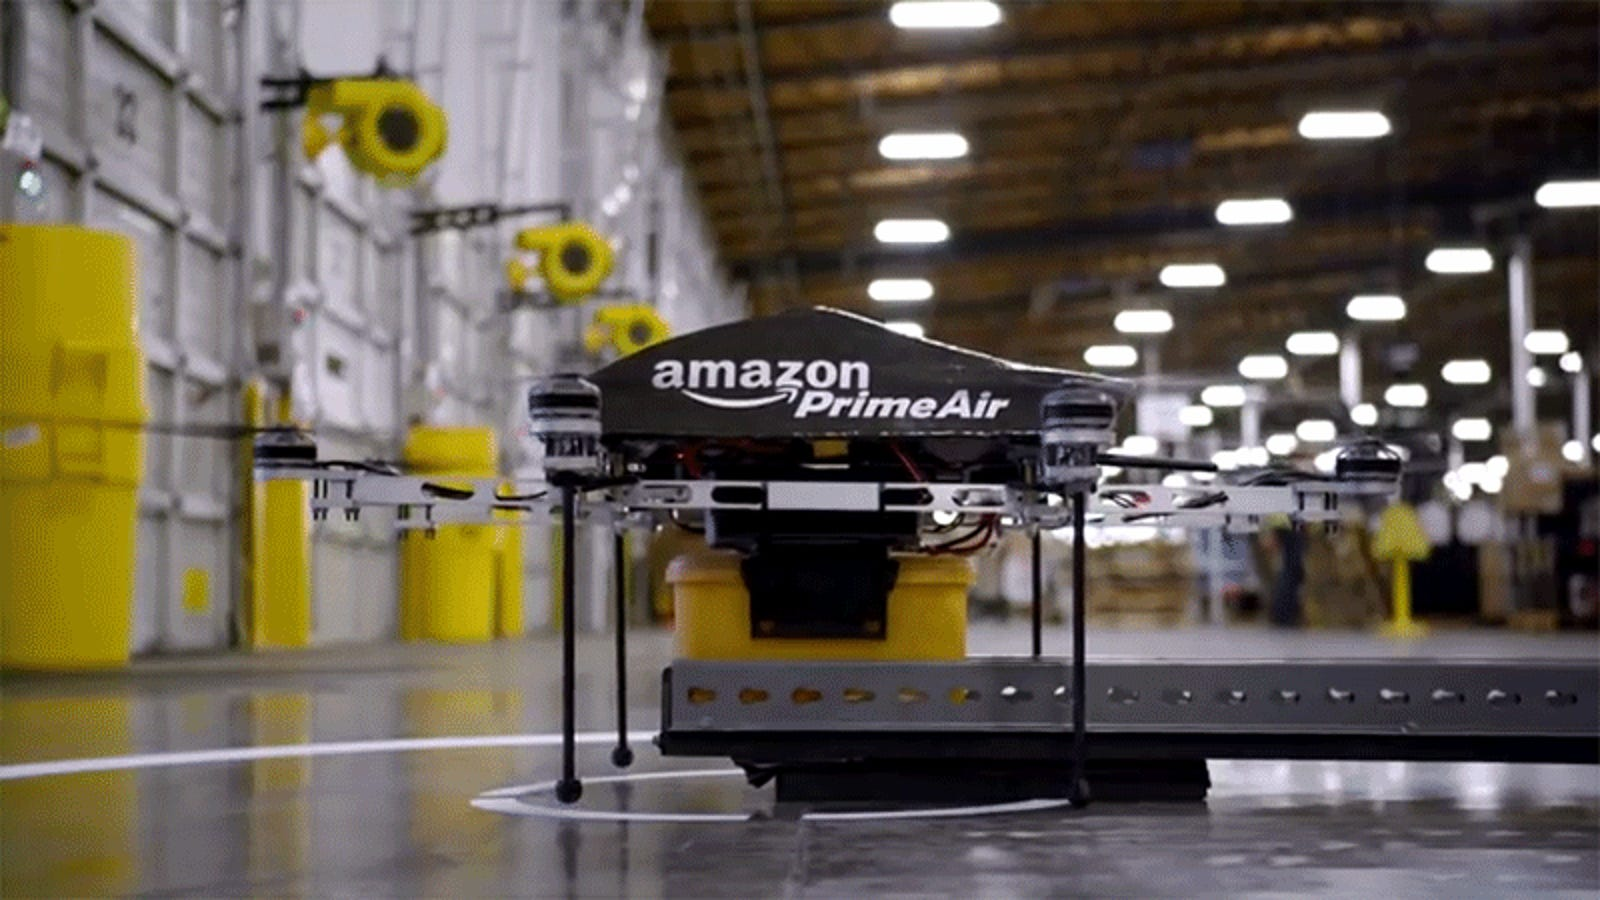 Amazon Promised Drone Delivery in Five Years... Five Years Ago